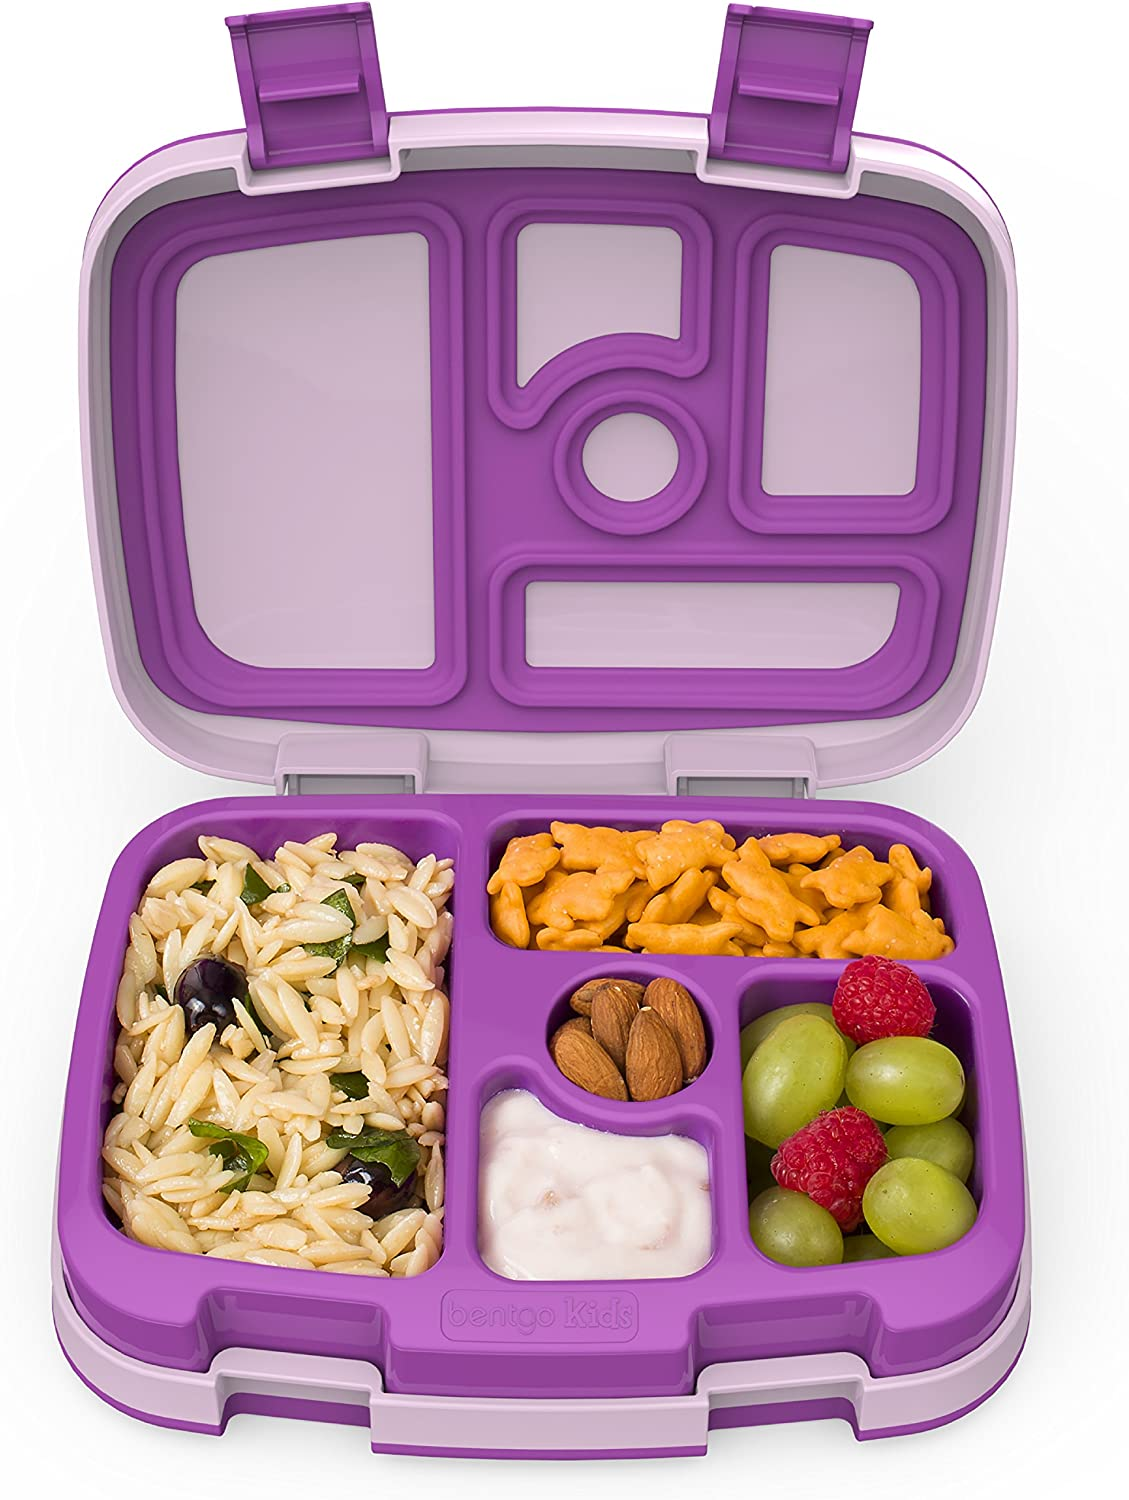 Top 9 Best Bento Box For Toddlers Lunch Time (2020 Reviews) 5